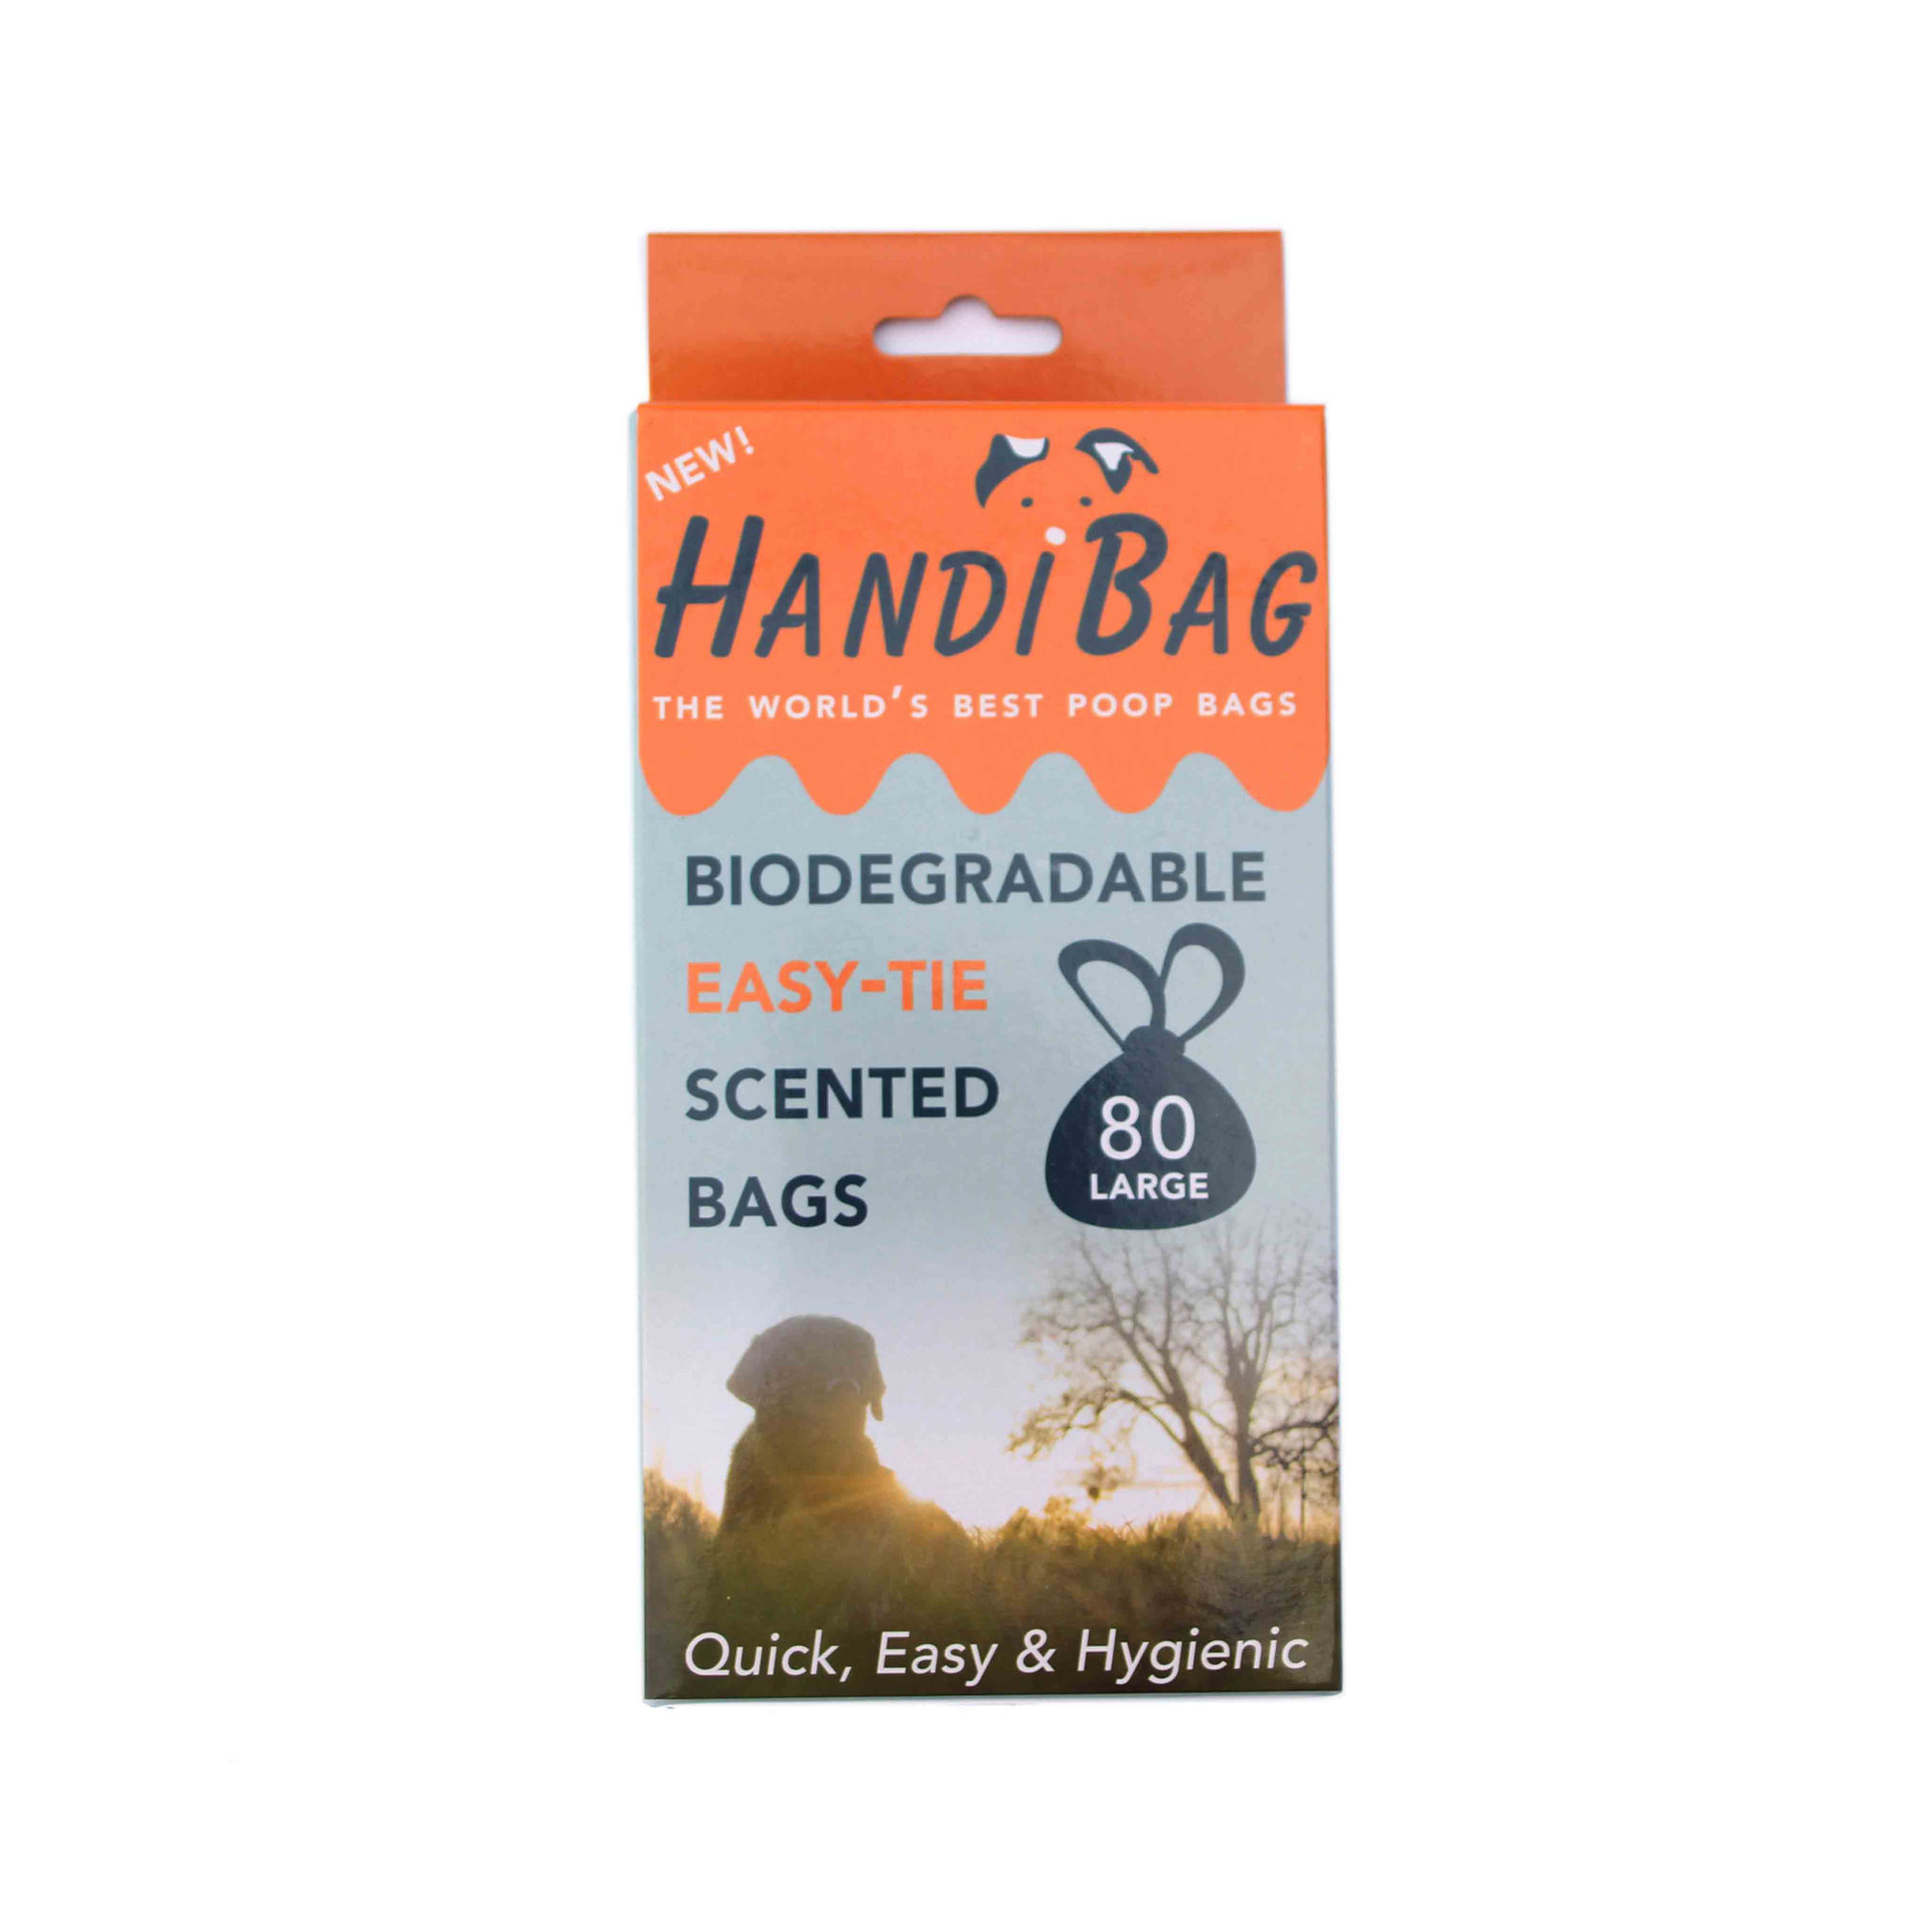 HandiBag Biodegradable-Gassibeutel